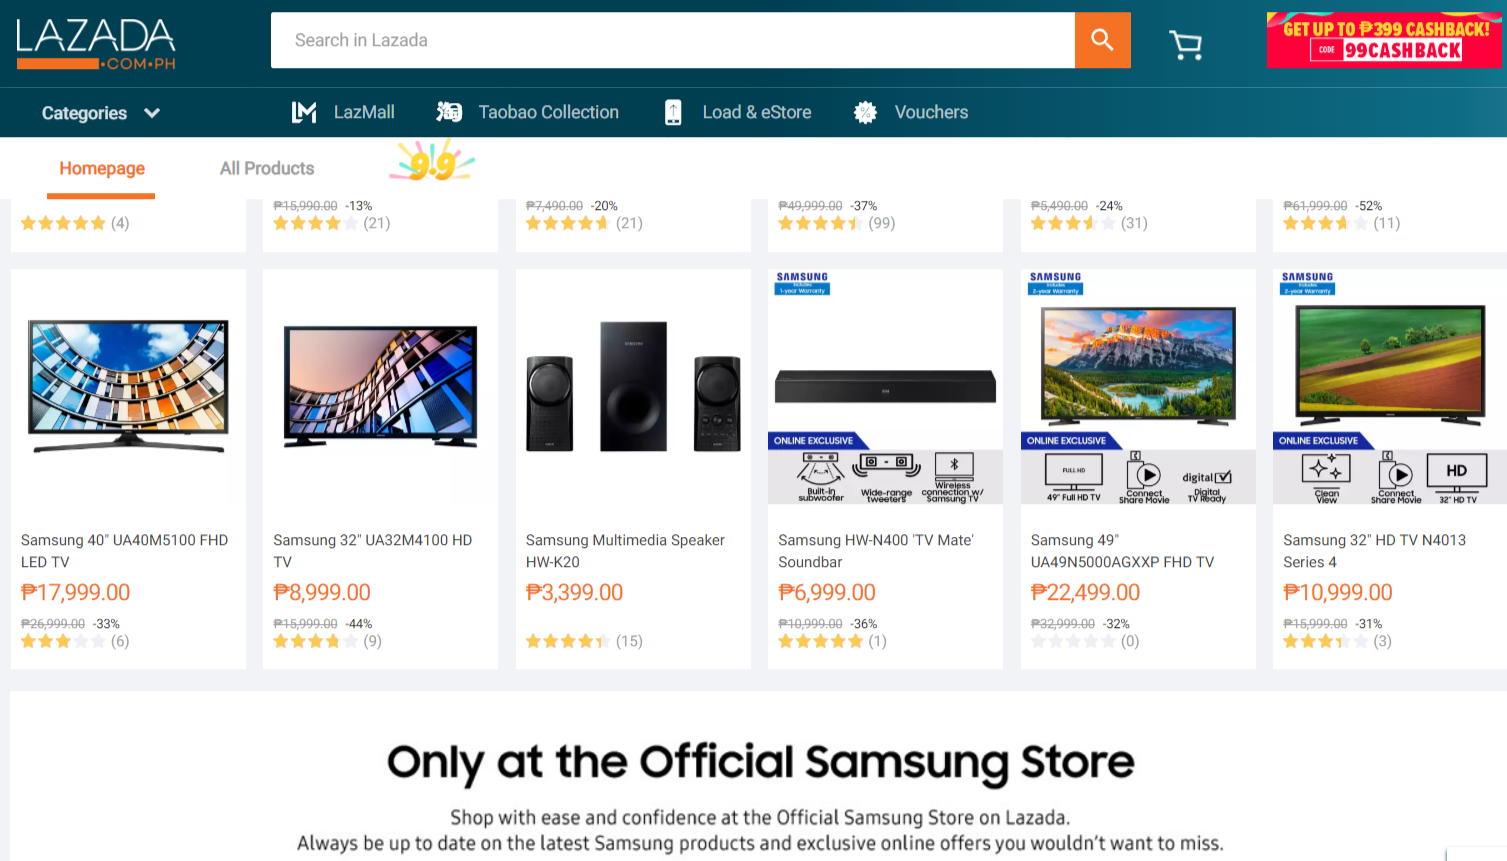 Enjoy Great Offers on Samsung Products in Lazada's 9.9 Sale!